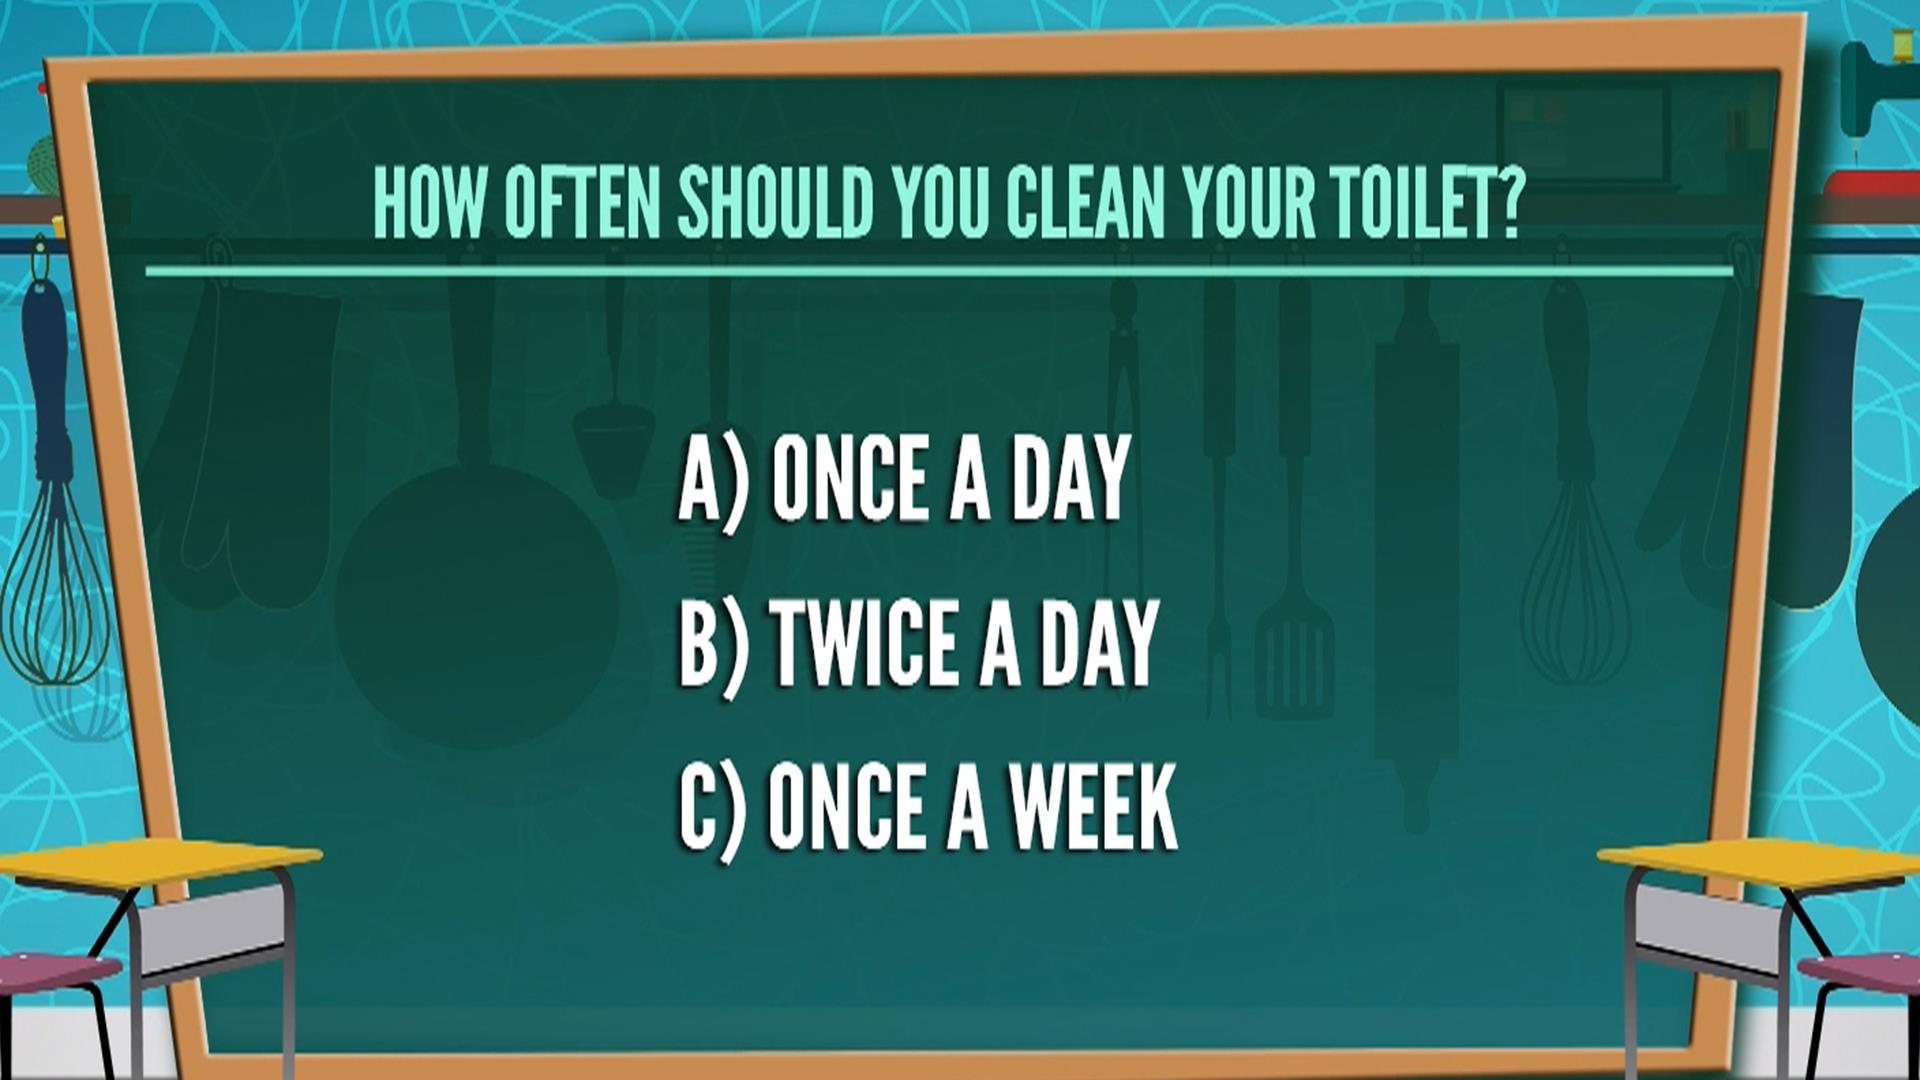 How often should you clean the toilet 1954 quiz stumps for How often to clean bathroom